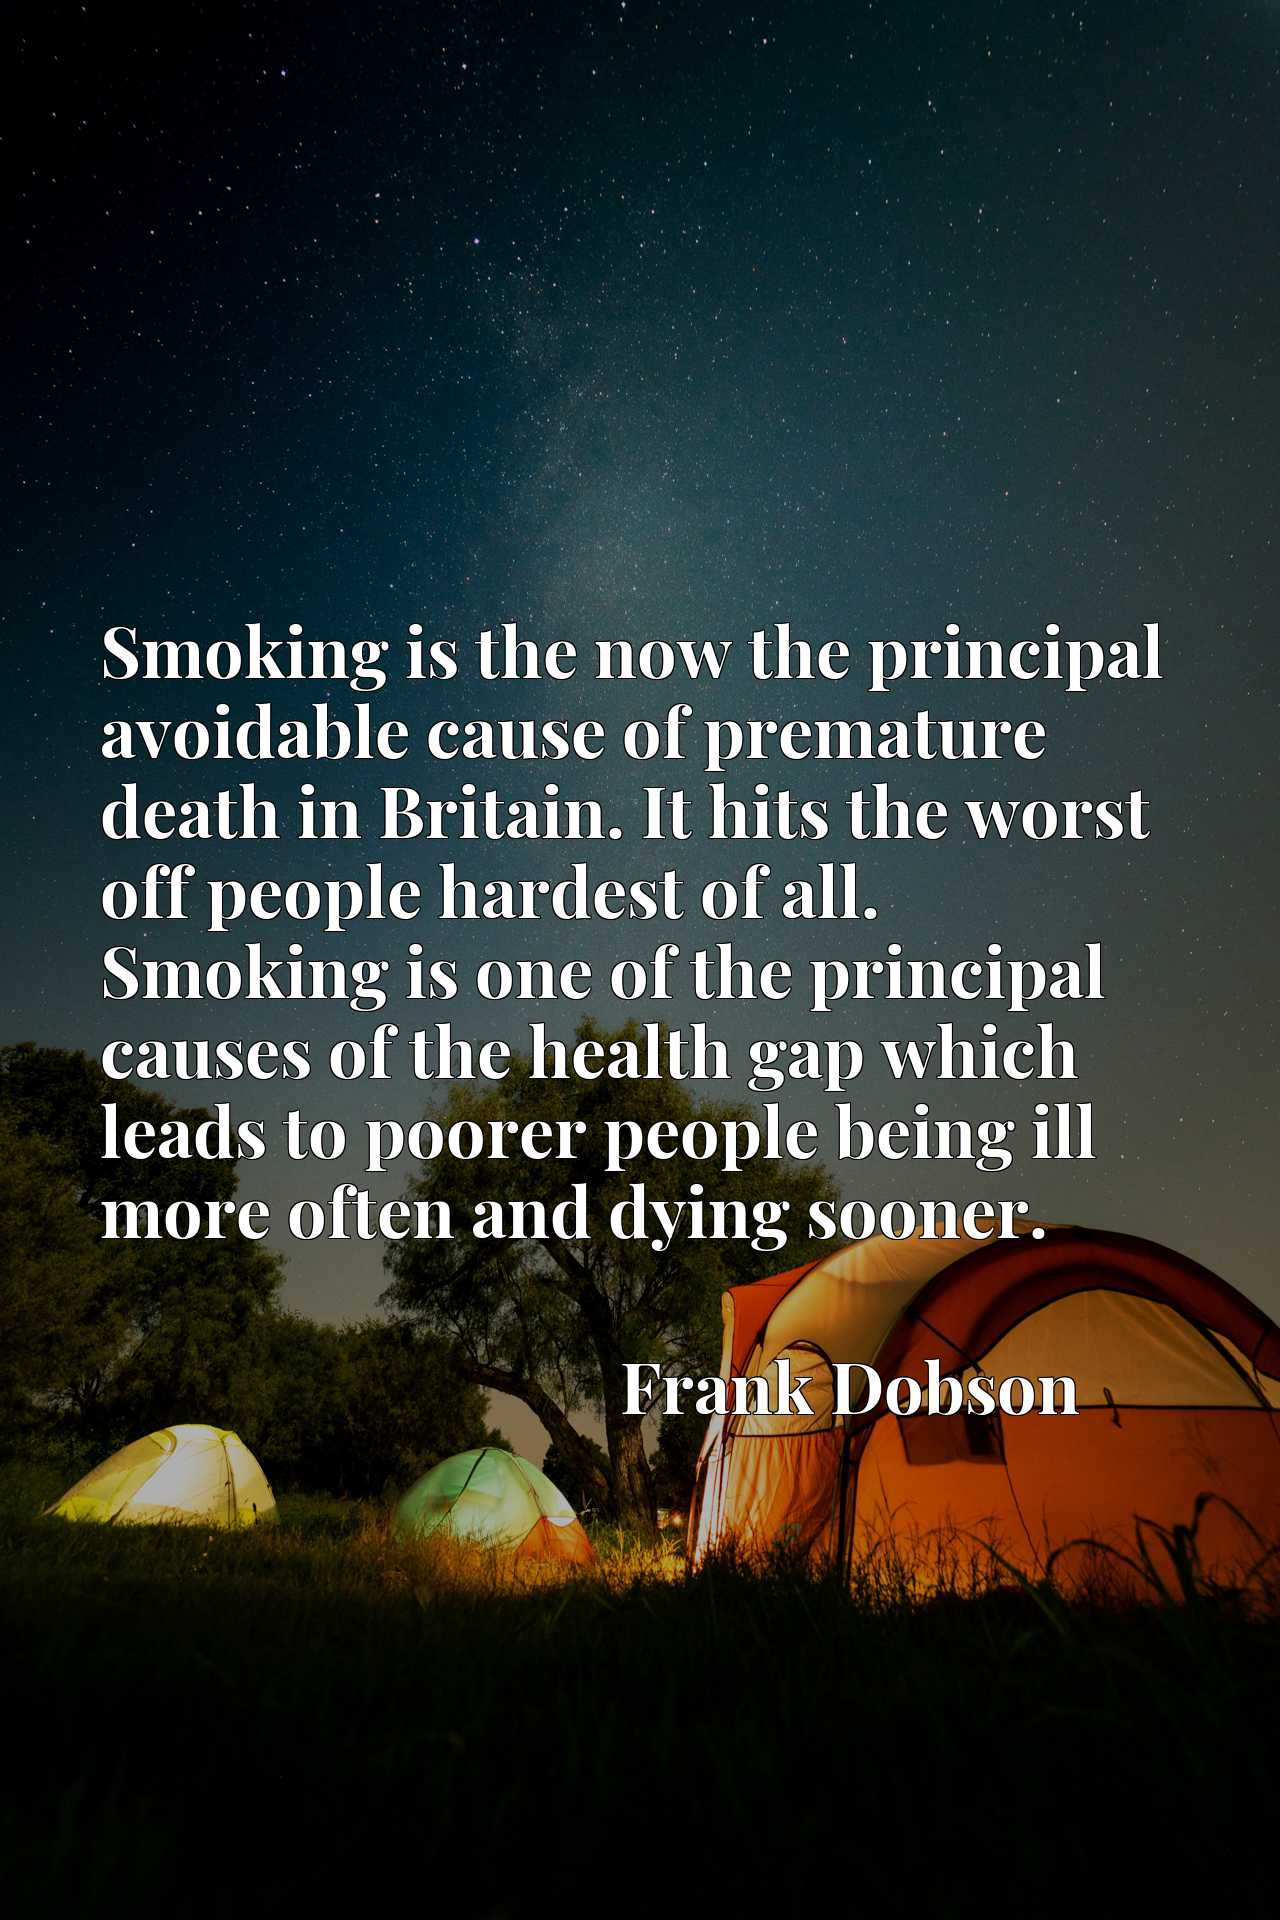 Smoking is the now the principal avoidable cause of premature death in Britain. It hits the worst off people hardest of all. Smoking is one of the principal causes of the health gap which leads to poorer people being ill more often and dying sooner.